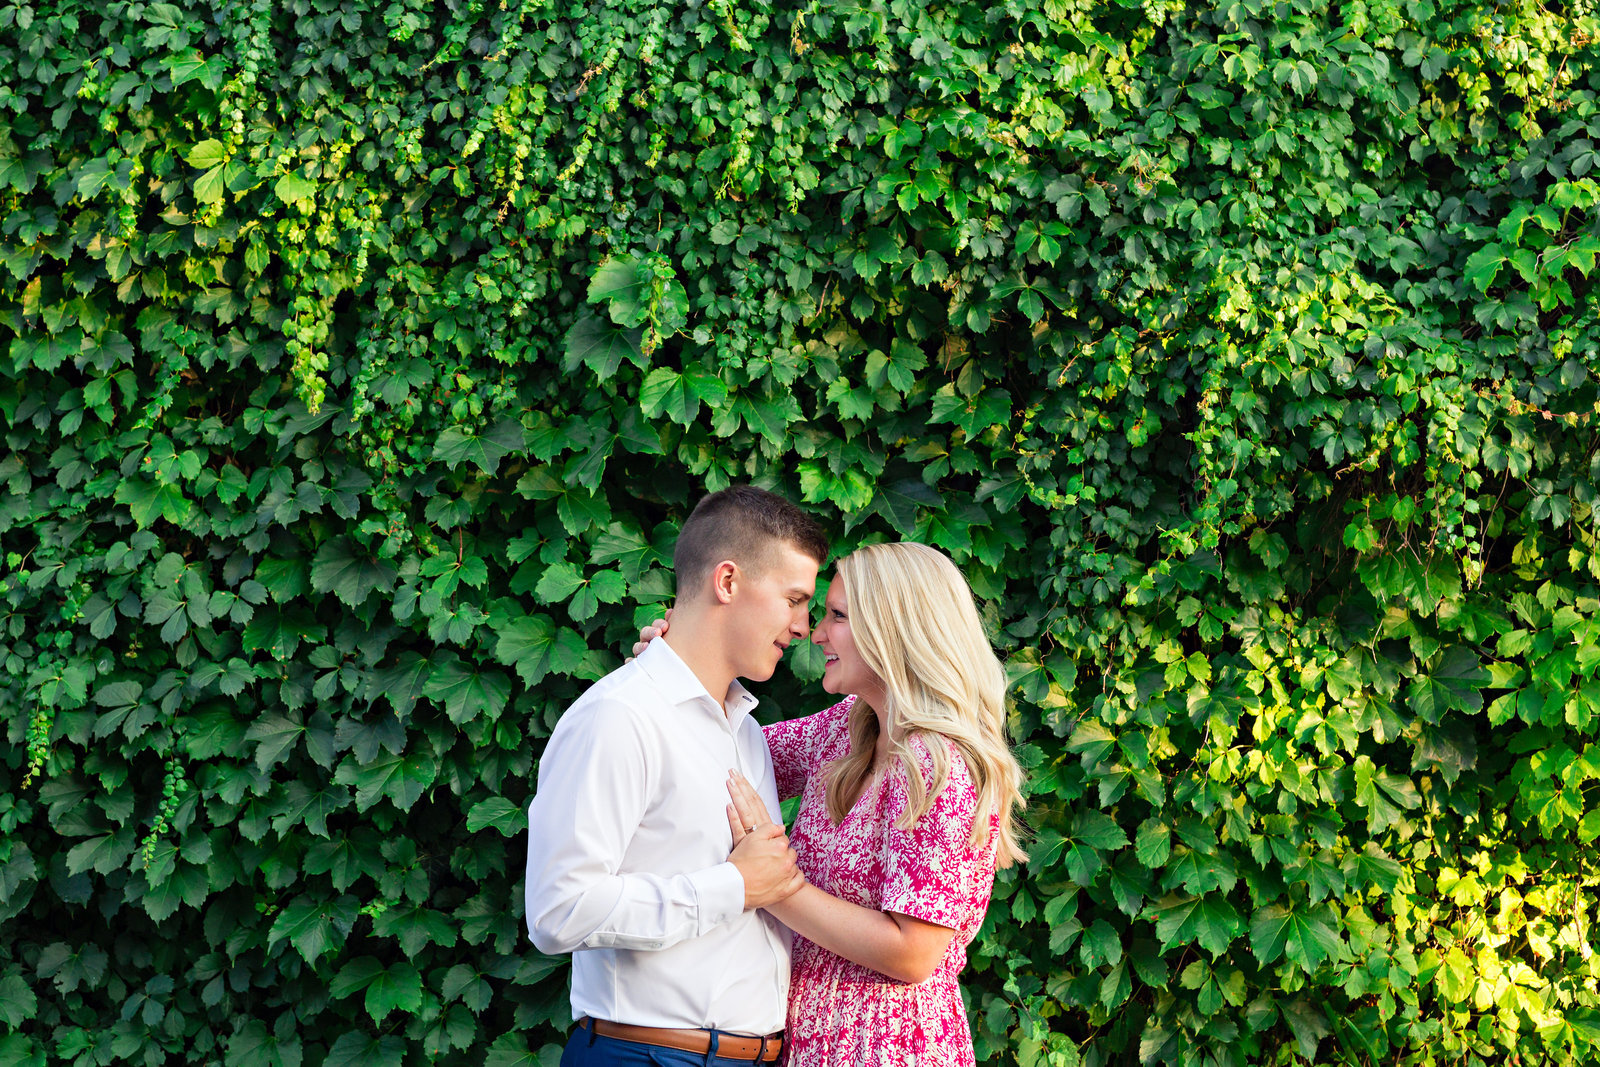 Portsmouth-New-Hampshire-Wedding-Photographers-Engagement-Ivy-Outdoor-Urban-I-AM-SARAH-V-Photography-Photo